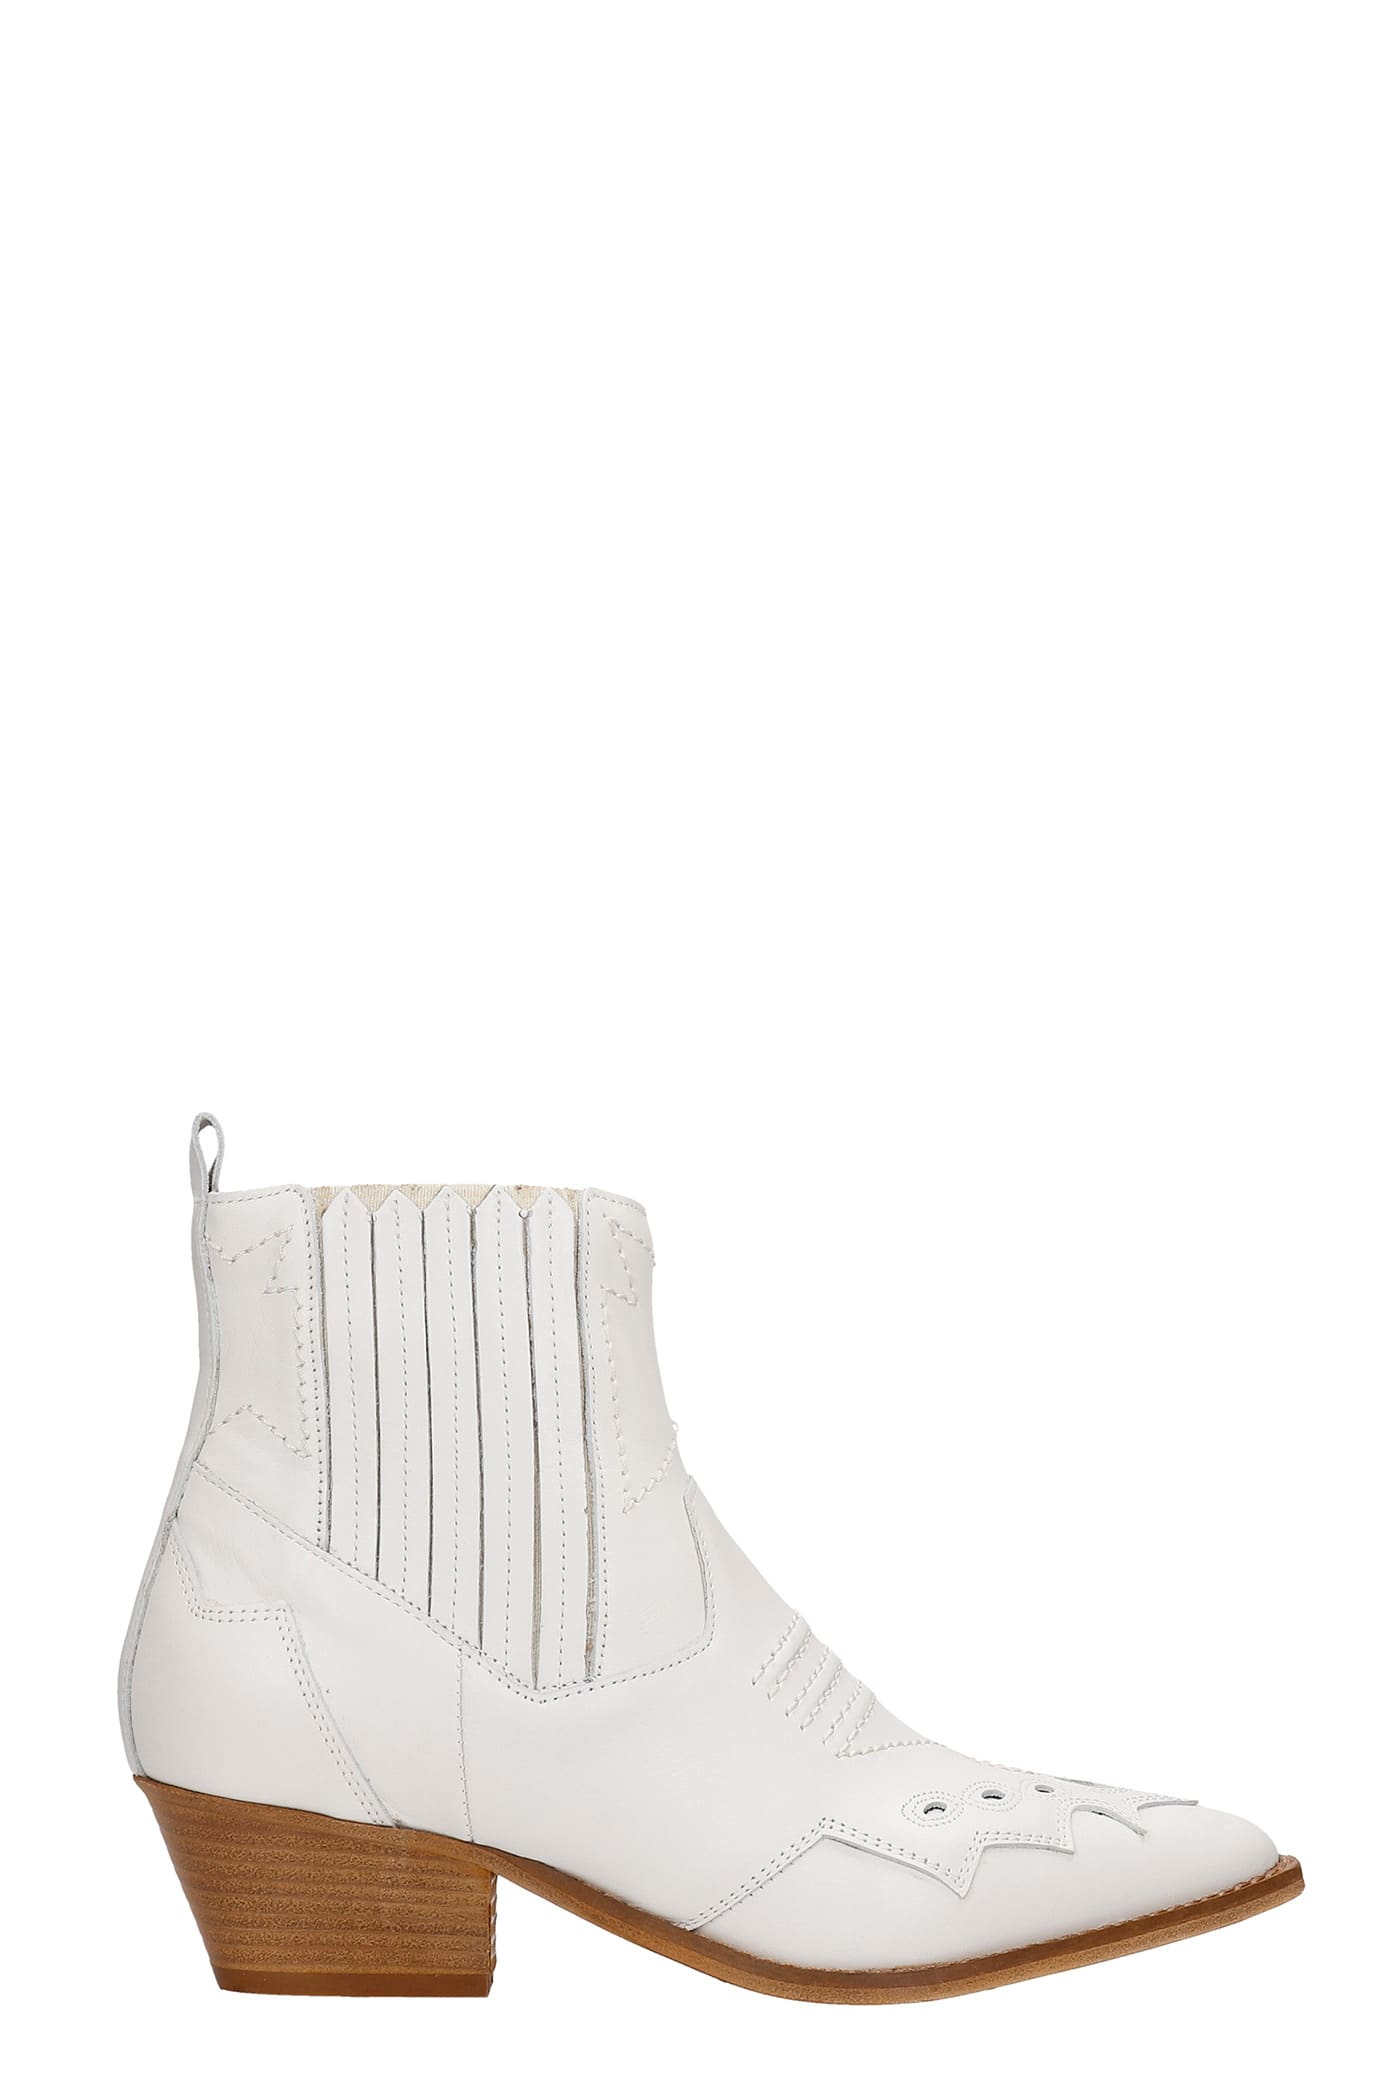 Texan Ankle Boots In White Leather